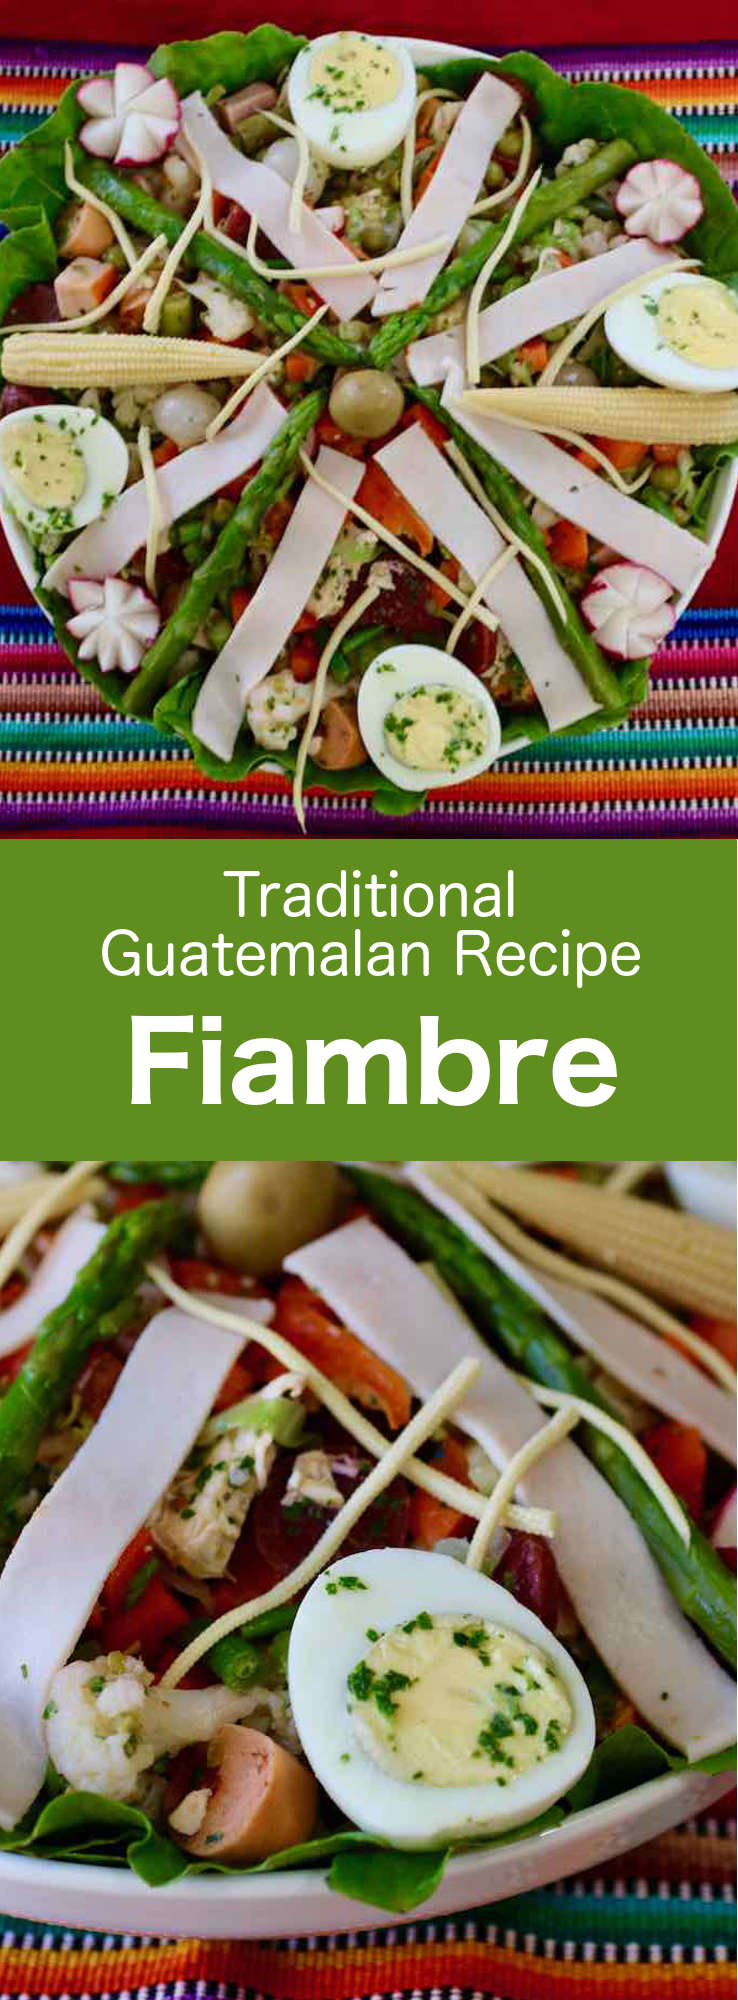 Fiambre is a traditional Guatemalan cold salad prepared with a variety of vegetables, meats and cheeses, that is mostly eaten on Día de los Muertos. #CentralAmericanCuisine #CentralAmericanRecipe #GuatemalanCuisine #GuatemalanRecipe #WorldCuisine #196flavors